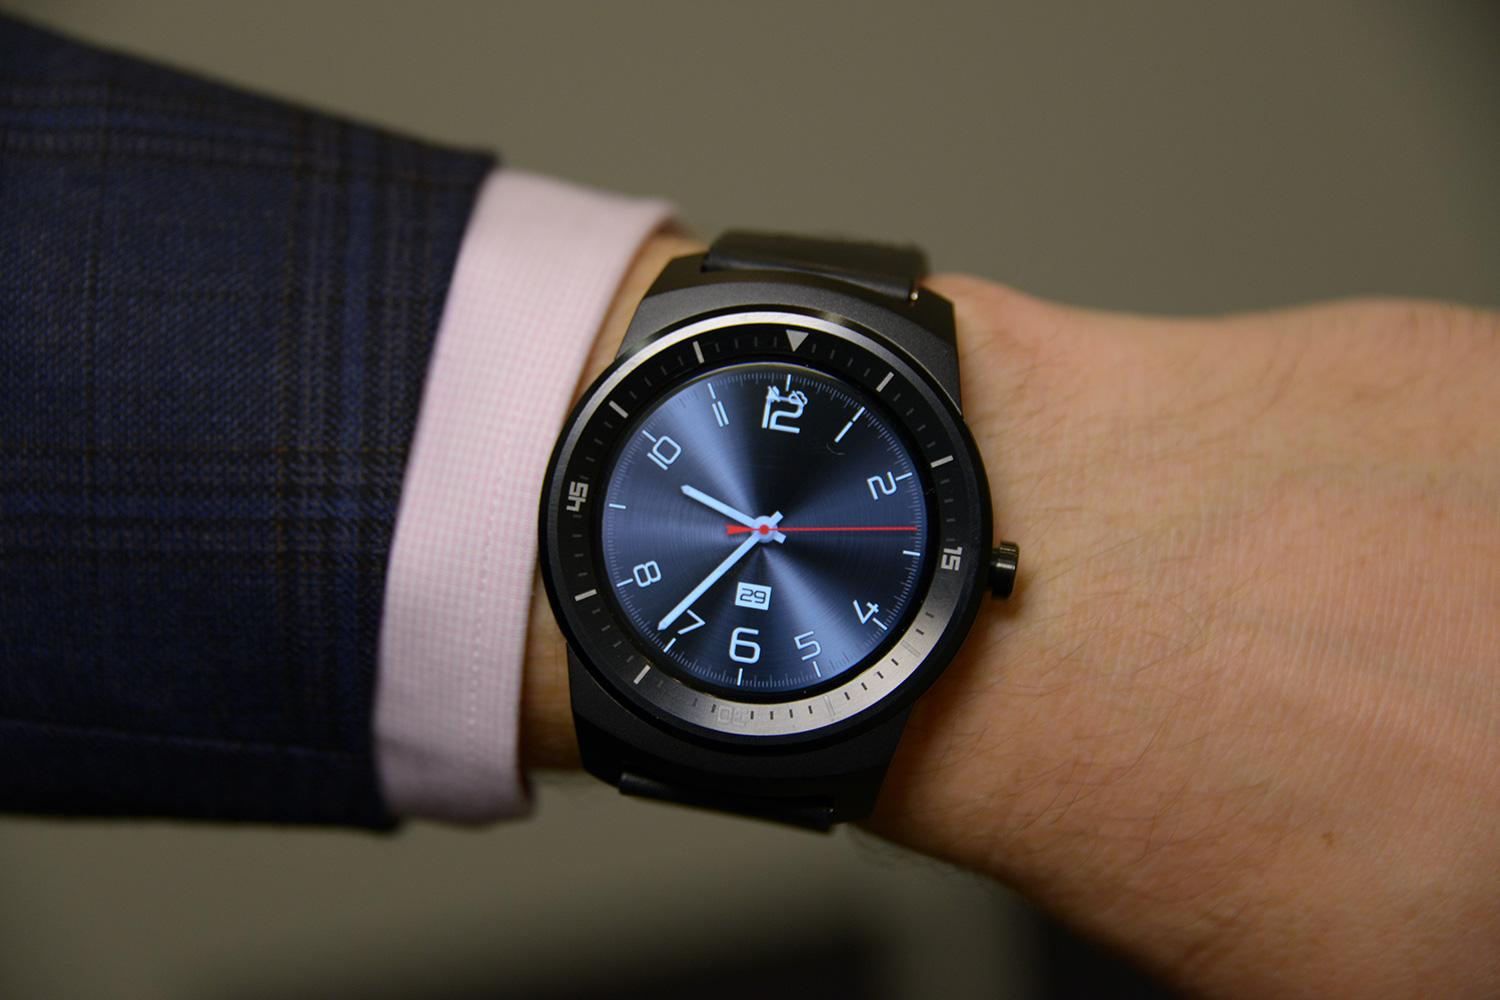 Lg G Watch R Android Release Date Price And More